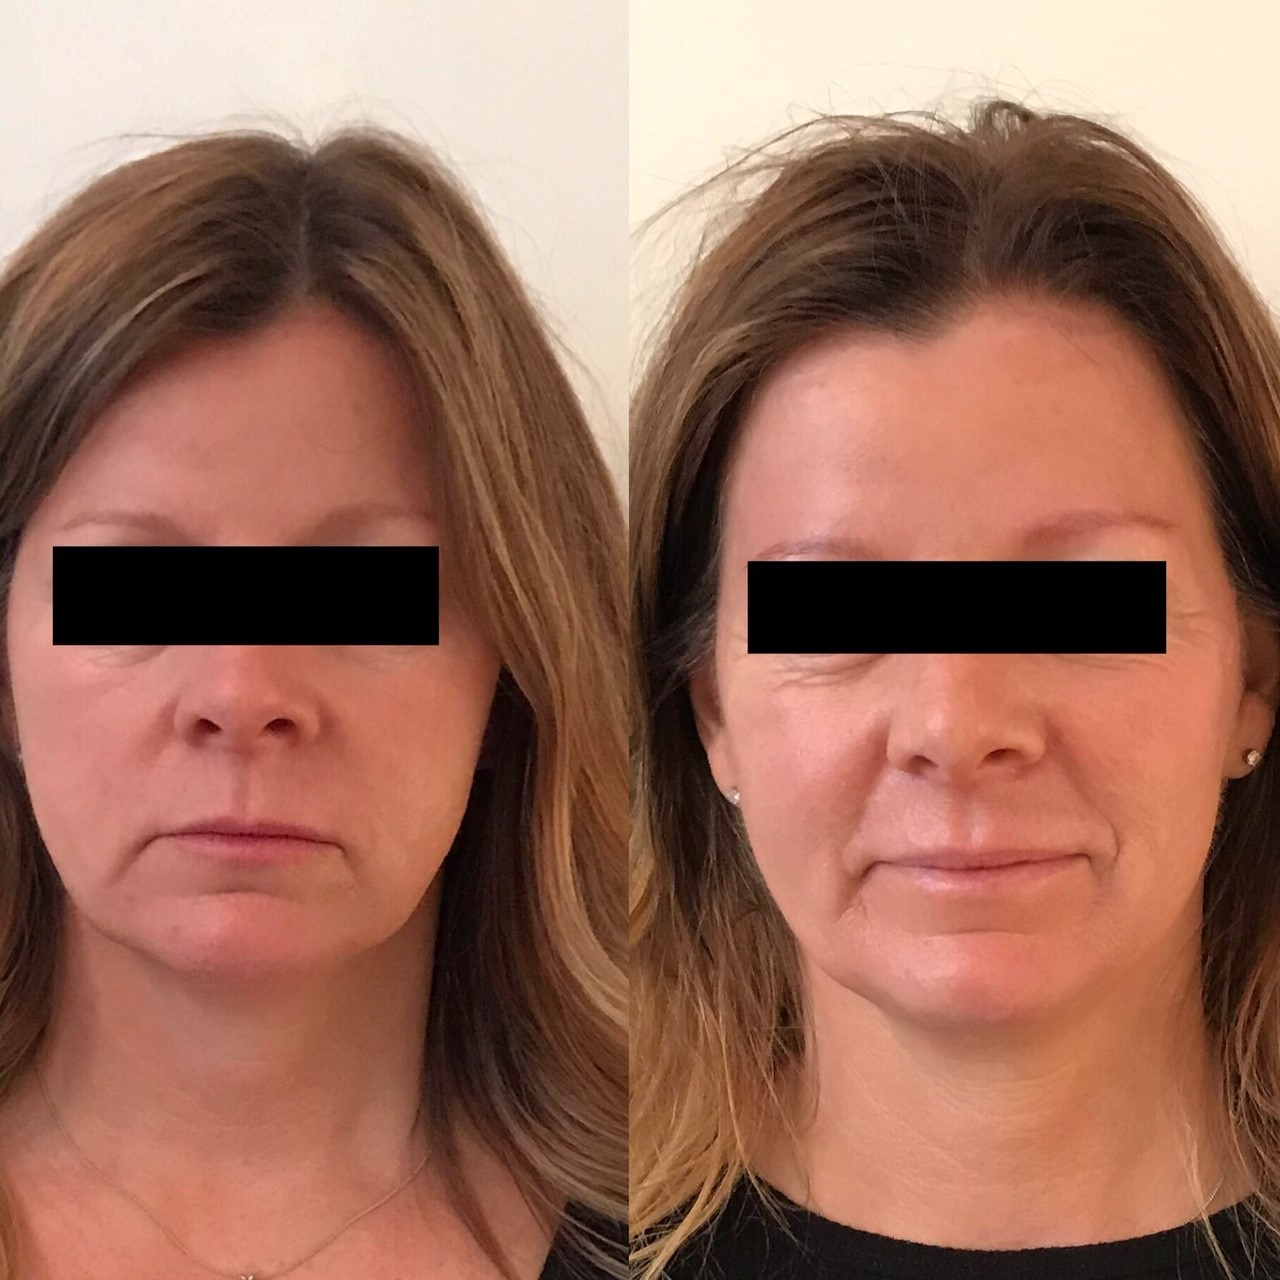 After receiving the radio frequency V-lifting facial, our client's skin looks so plump, hydrated, energized and healthy Our B&A was taken and shared with the permission of our client No filter, no photoshopped